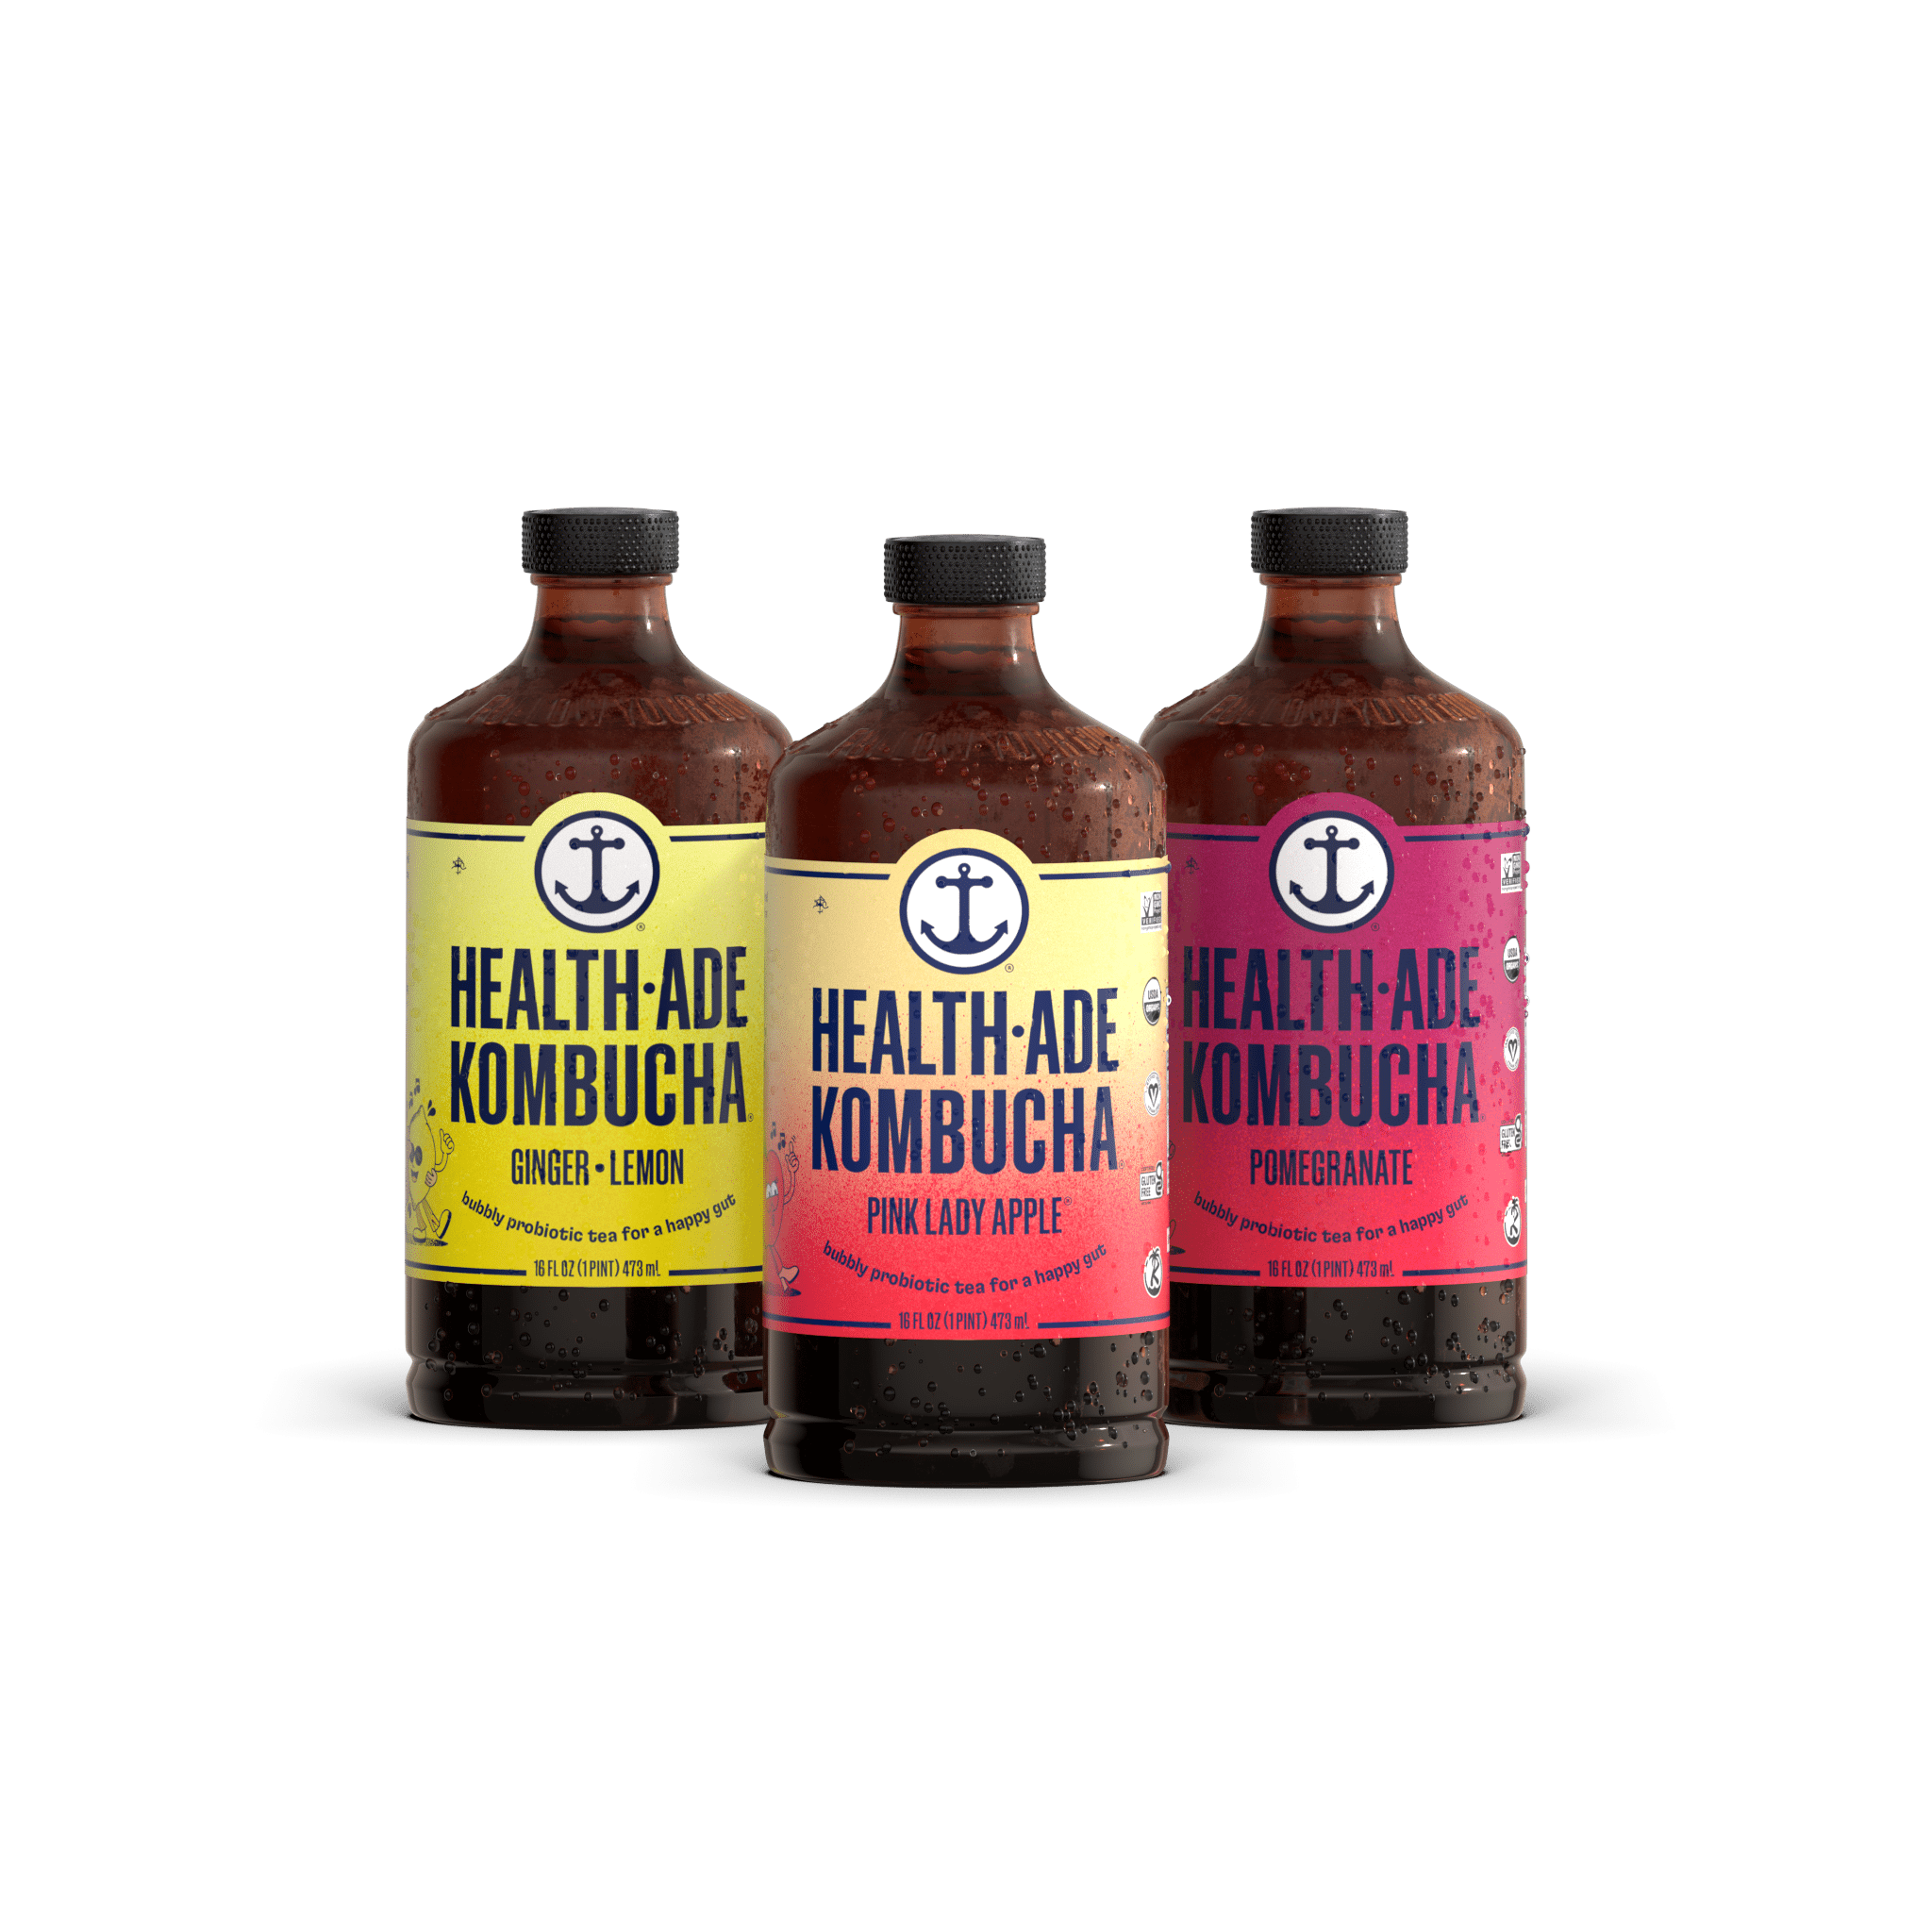 Health-Ade 35% Off Sitewide Coupon: 12-Pack 16-Oz Kombucha Tea Organic Probiotic Drink (Various) $31.20, 6-Pack 16-Oz PLUS Sampler (6 flavors) $20.80 & More + Free Shipping